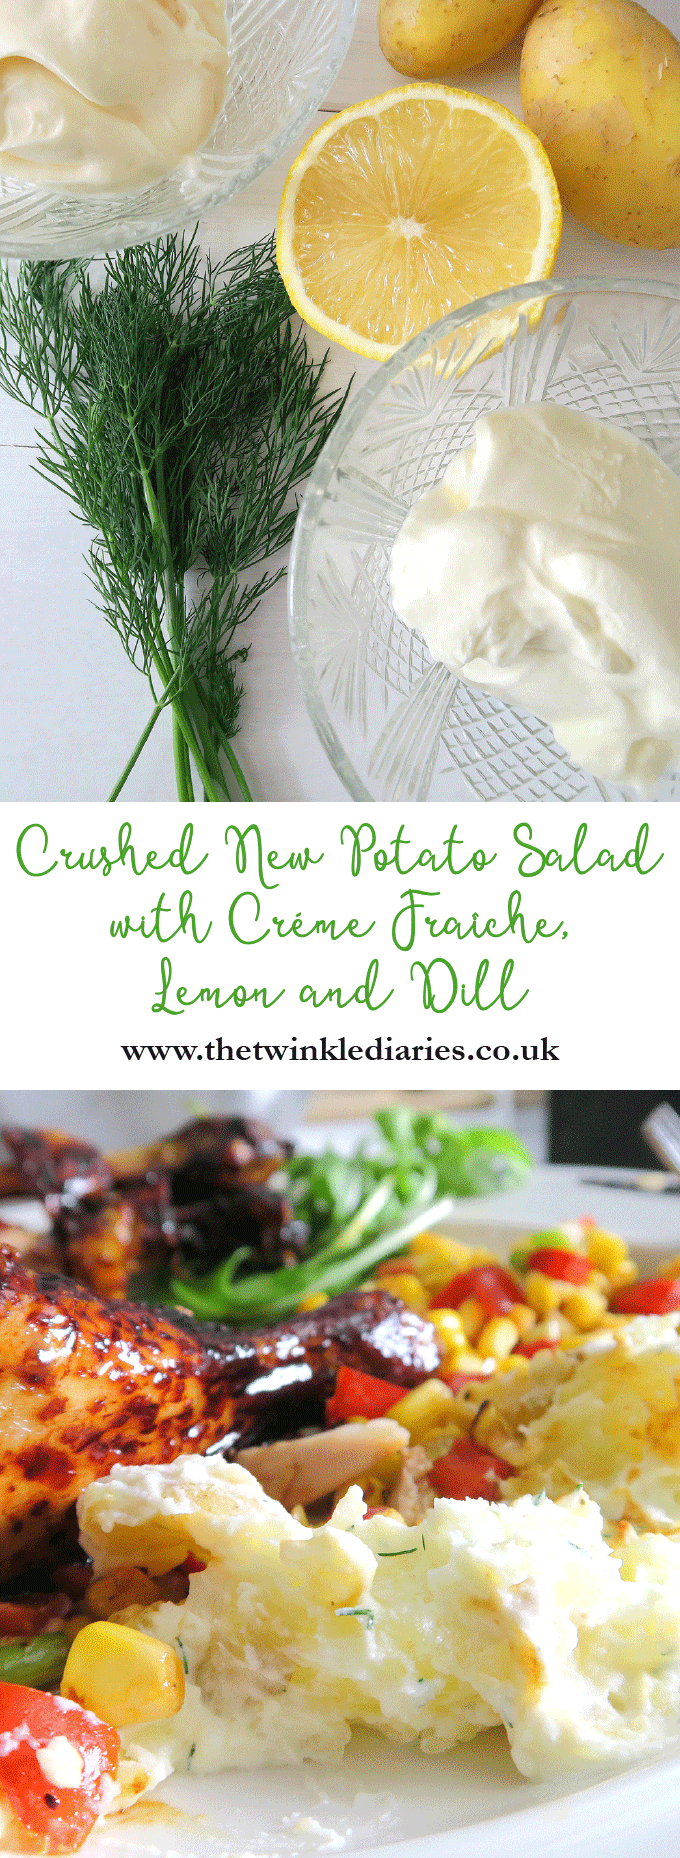 How to Make Tasty Crushed New Potato Salad with Créme Fraîche, Lemon and Dill by The Twinkle Diaries